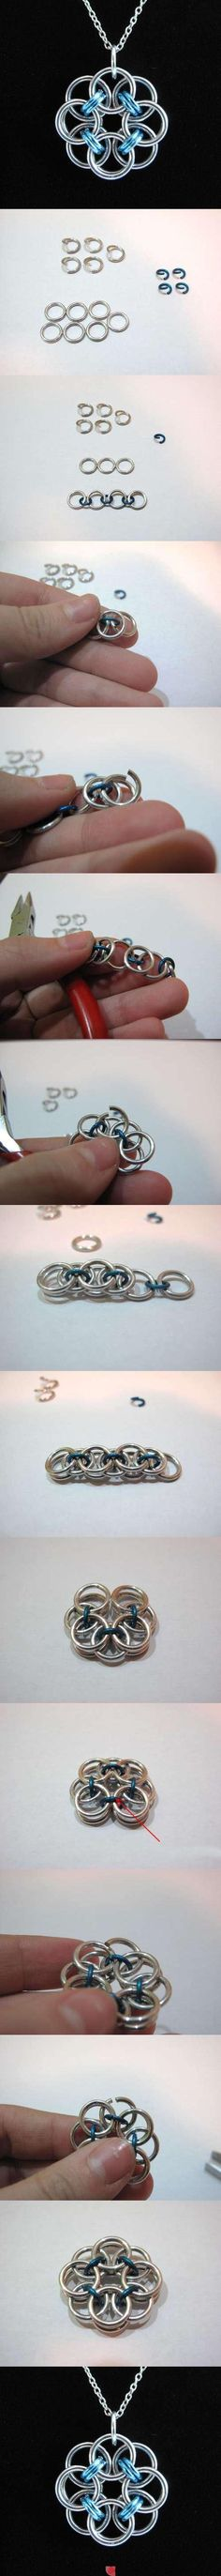 chain maille:                                                                                                                                                                                 More